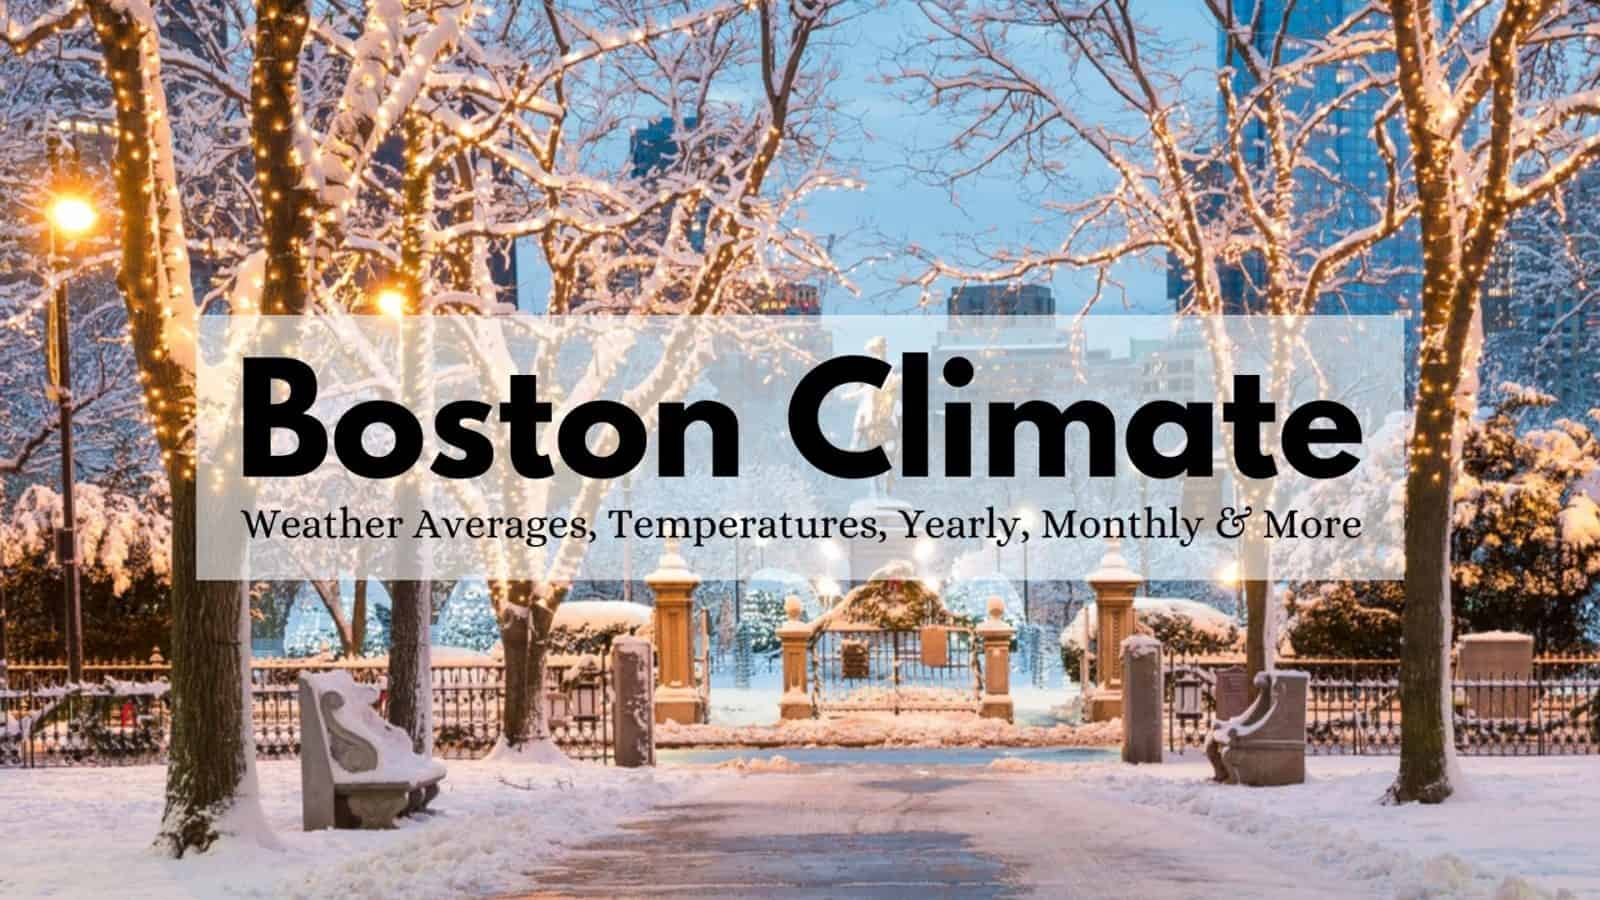 Boston Climate - Weather Averages, Temperatures, Yearly, Monthly & More